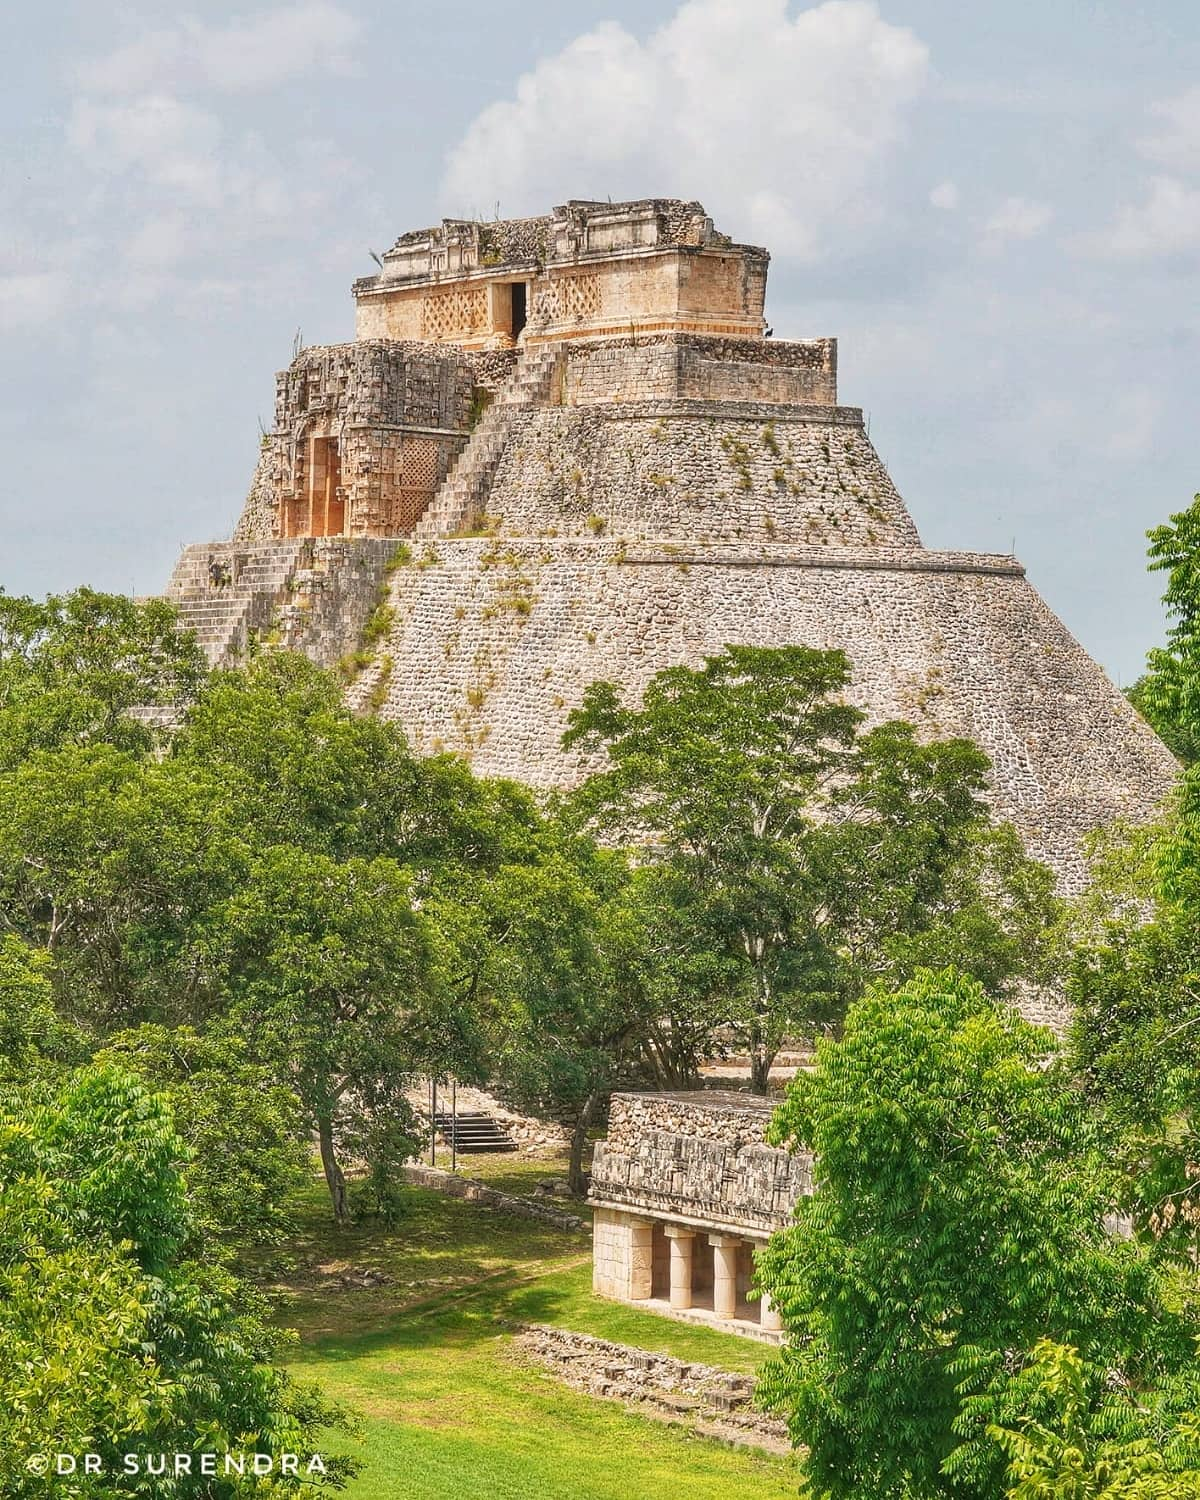 *My Picture of the day* The Pyramids of Mexico - seen in the ancient Mayan city of Uxmal, Yucatan state, Mexico. These pyramids dating back to 500 BC were built by people of Maya culture who inhabited southern Mexico and Goutemala. While the Egyptian pyramids are well known these pyramids are equally remarkable in their architecture and sophistication. ***** *Dr.Surendra* — at Uxmal Ruins